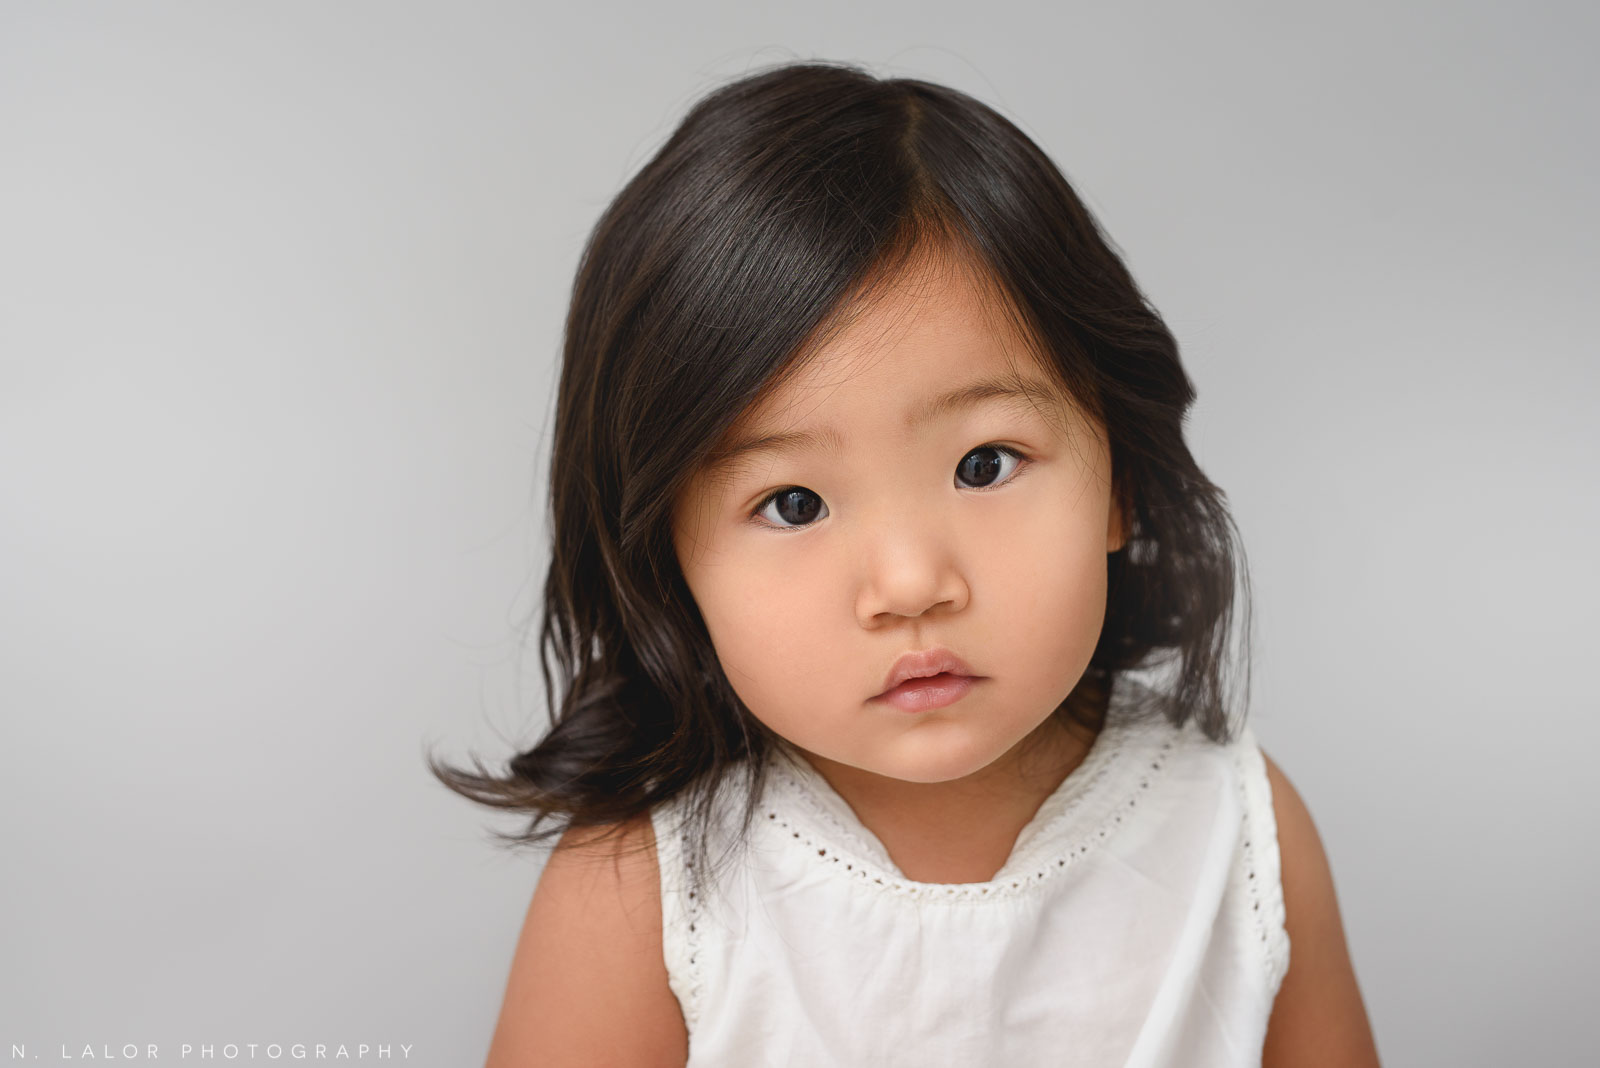 2-year old girl. Studio portrait by N. Lalor Photography in Greenwich, Connecticut.